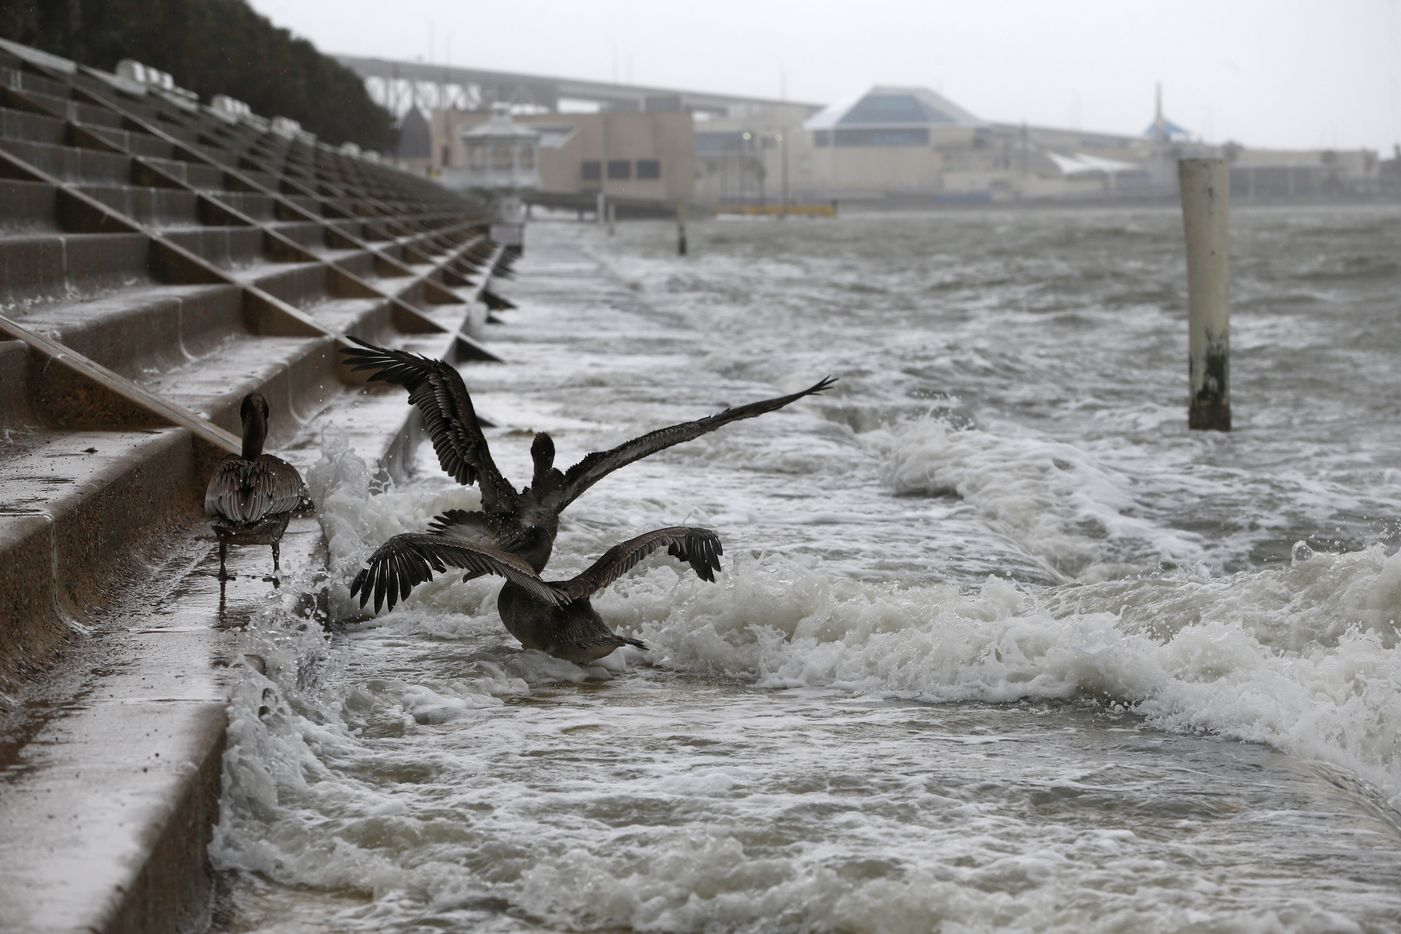 Pelicans battle the wind and waves as Hurricane Harvey hits Shoreline Blvd. in  Corpus Christi, Texas on Aug. 25, 2017.